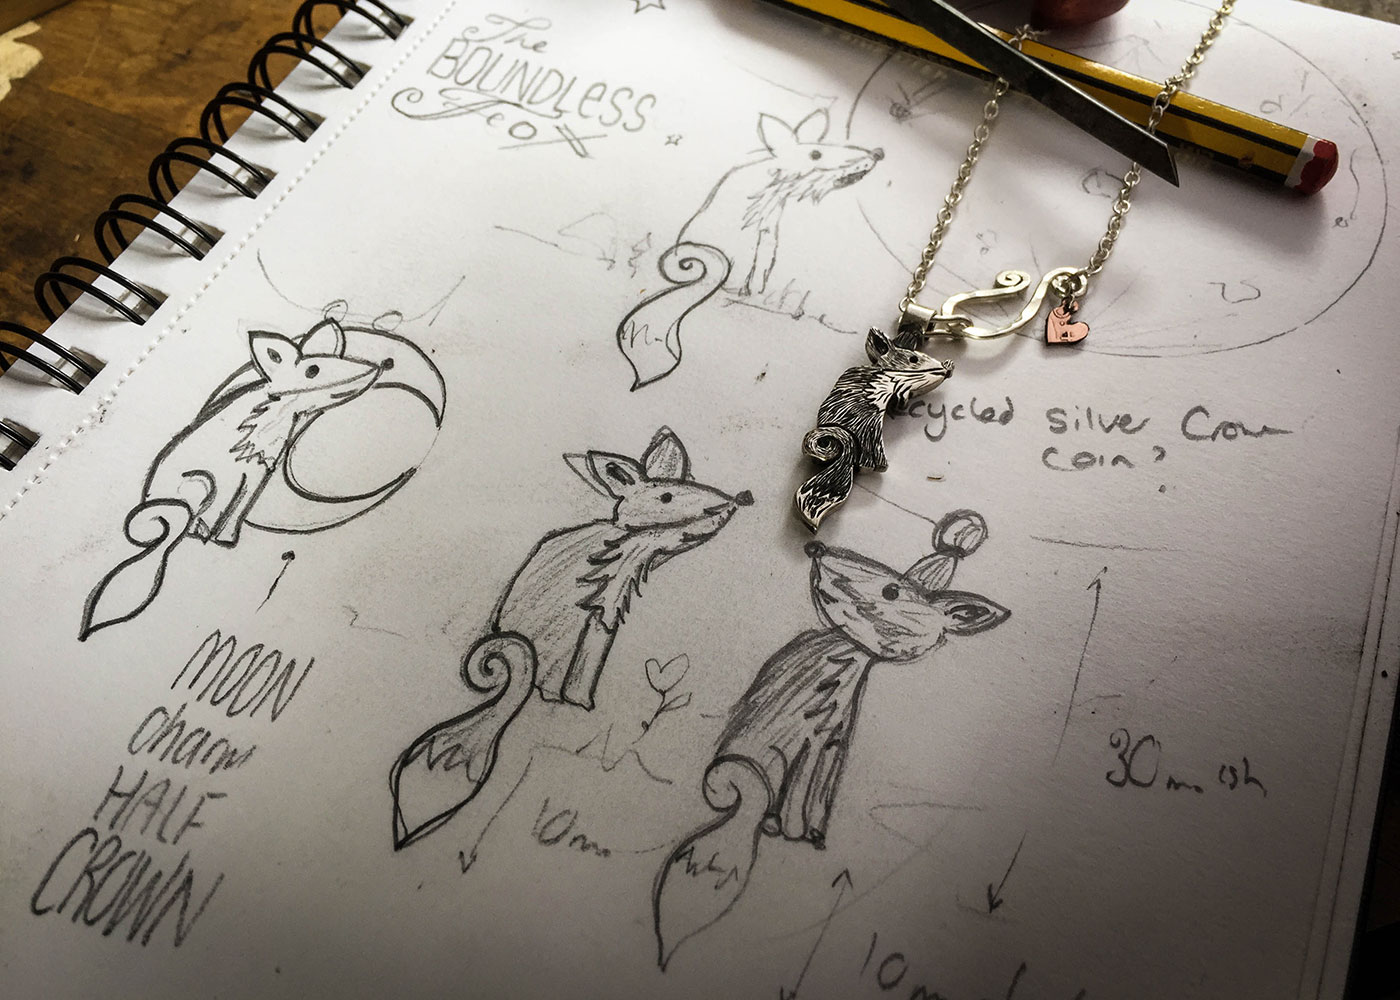 Fox jewellery - handmade using traditional tools and techniques reusing 100 year old sterling silver coins